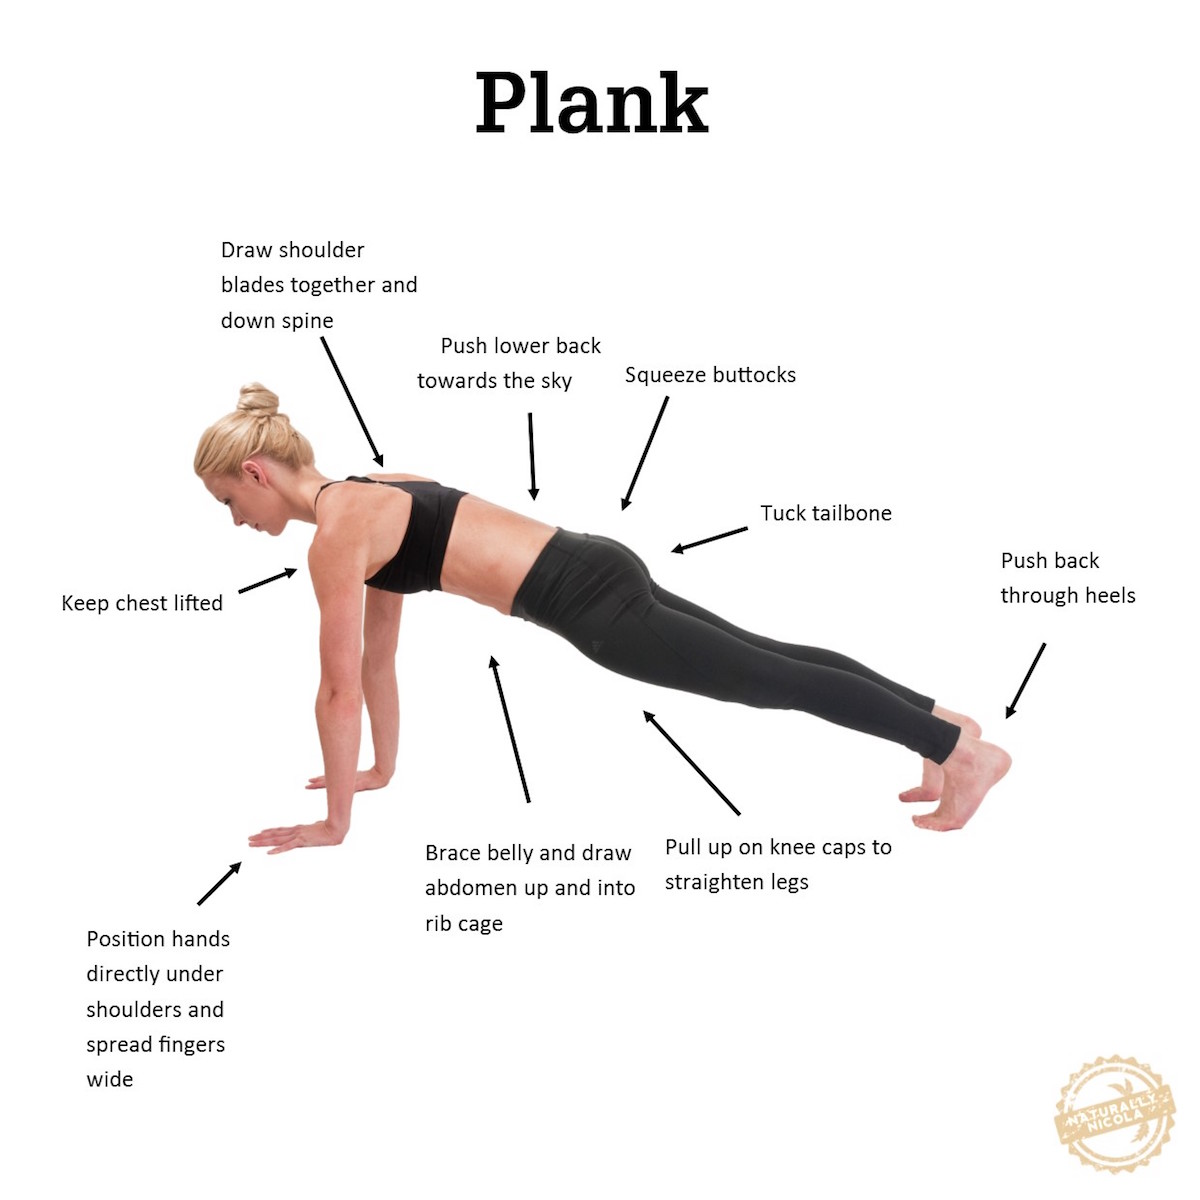 The Right Way To Plank! & Common Plank Mistakes